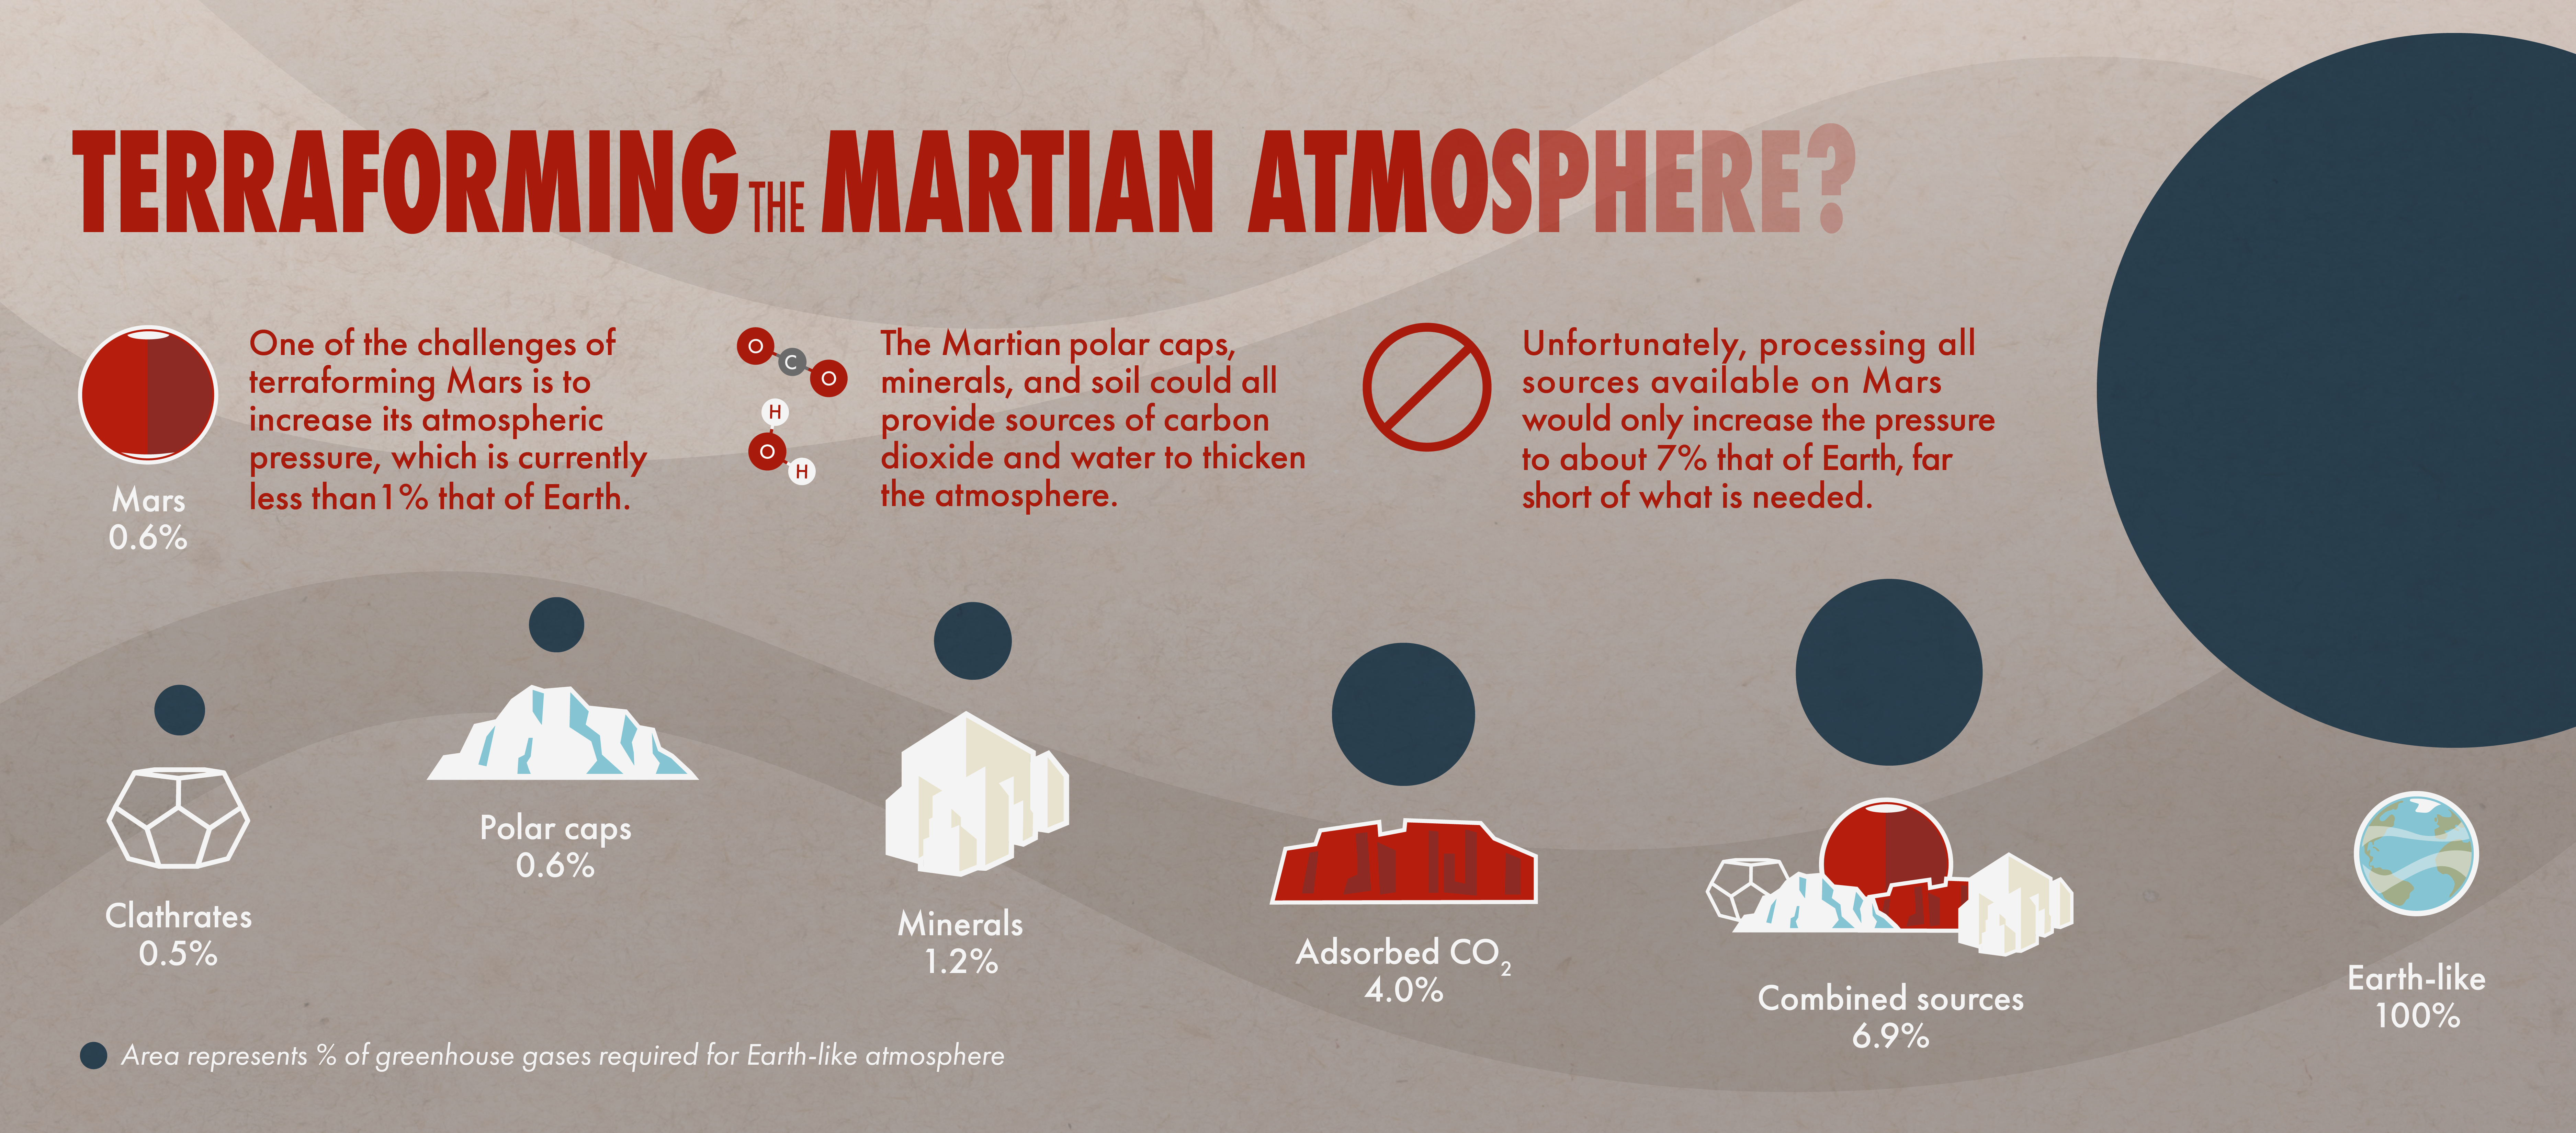 CO2 sources on the Mars